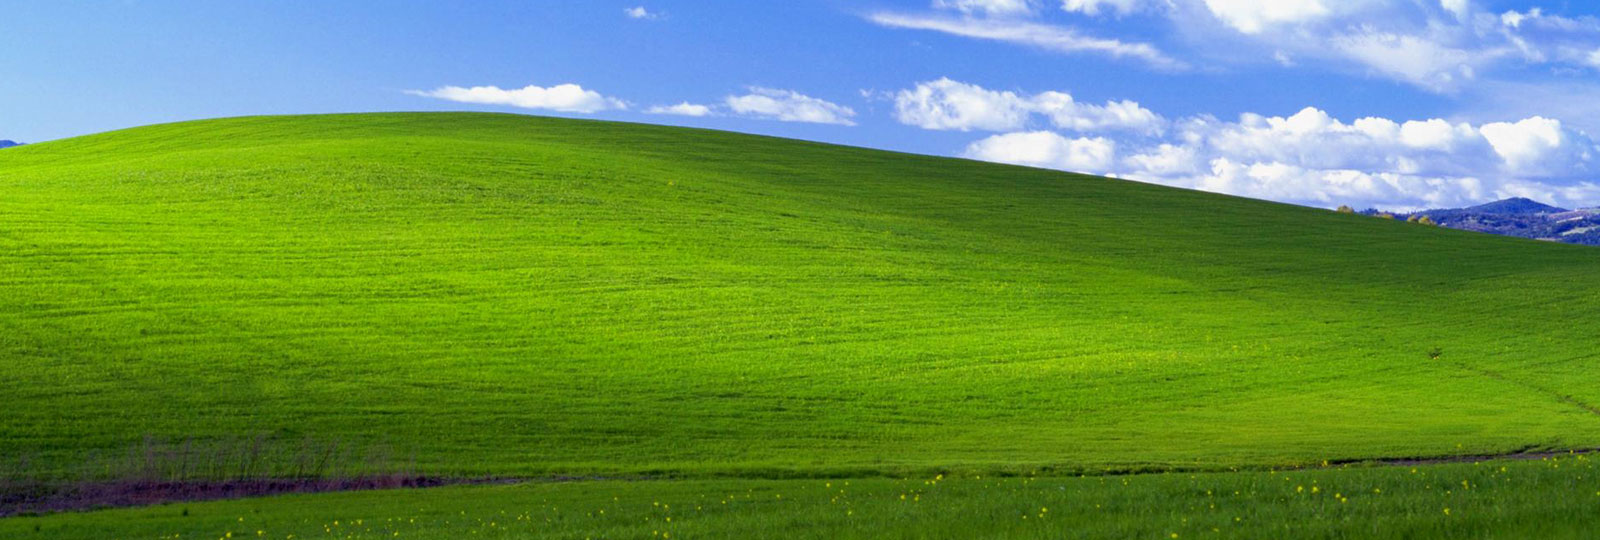 Faça a migração do Windows XP SP3 e do Office 2003 até 8 de abril de 2014.